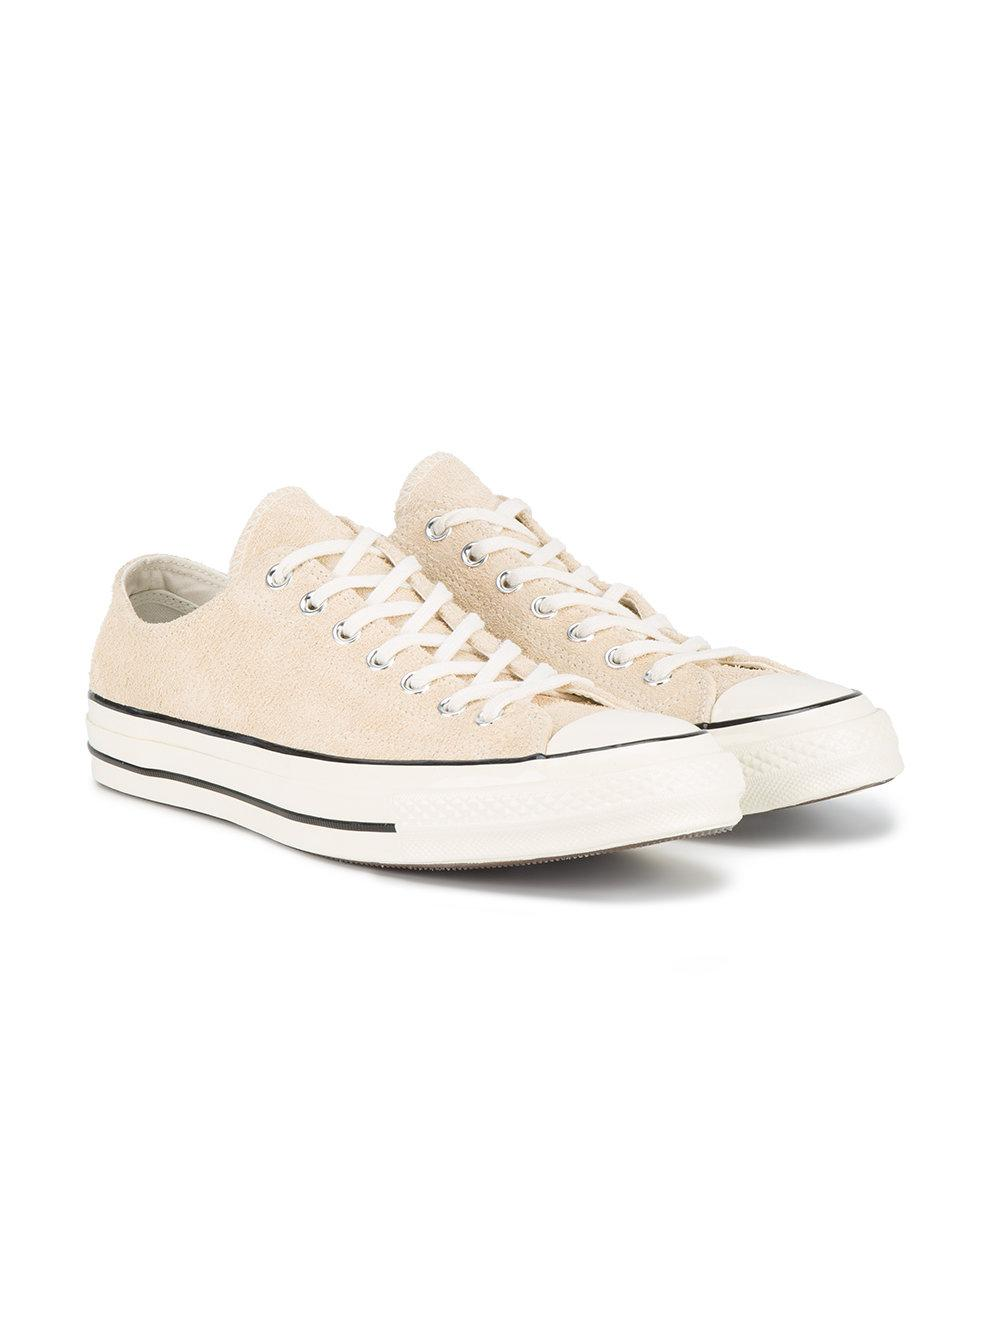 lyst converse suede 70s chuck taylor low sneakers for men